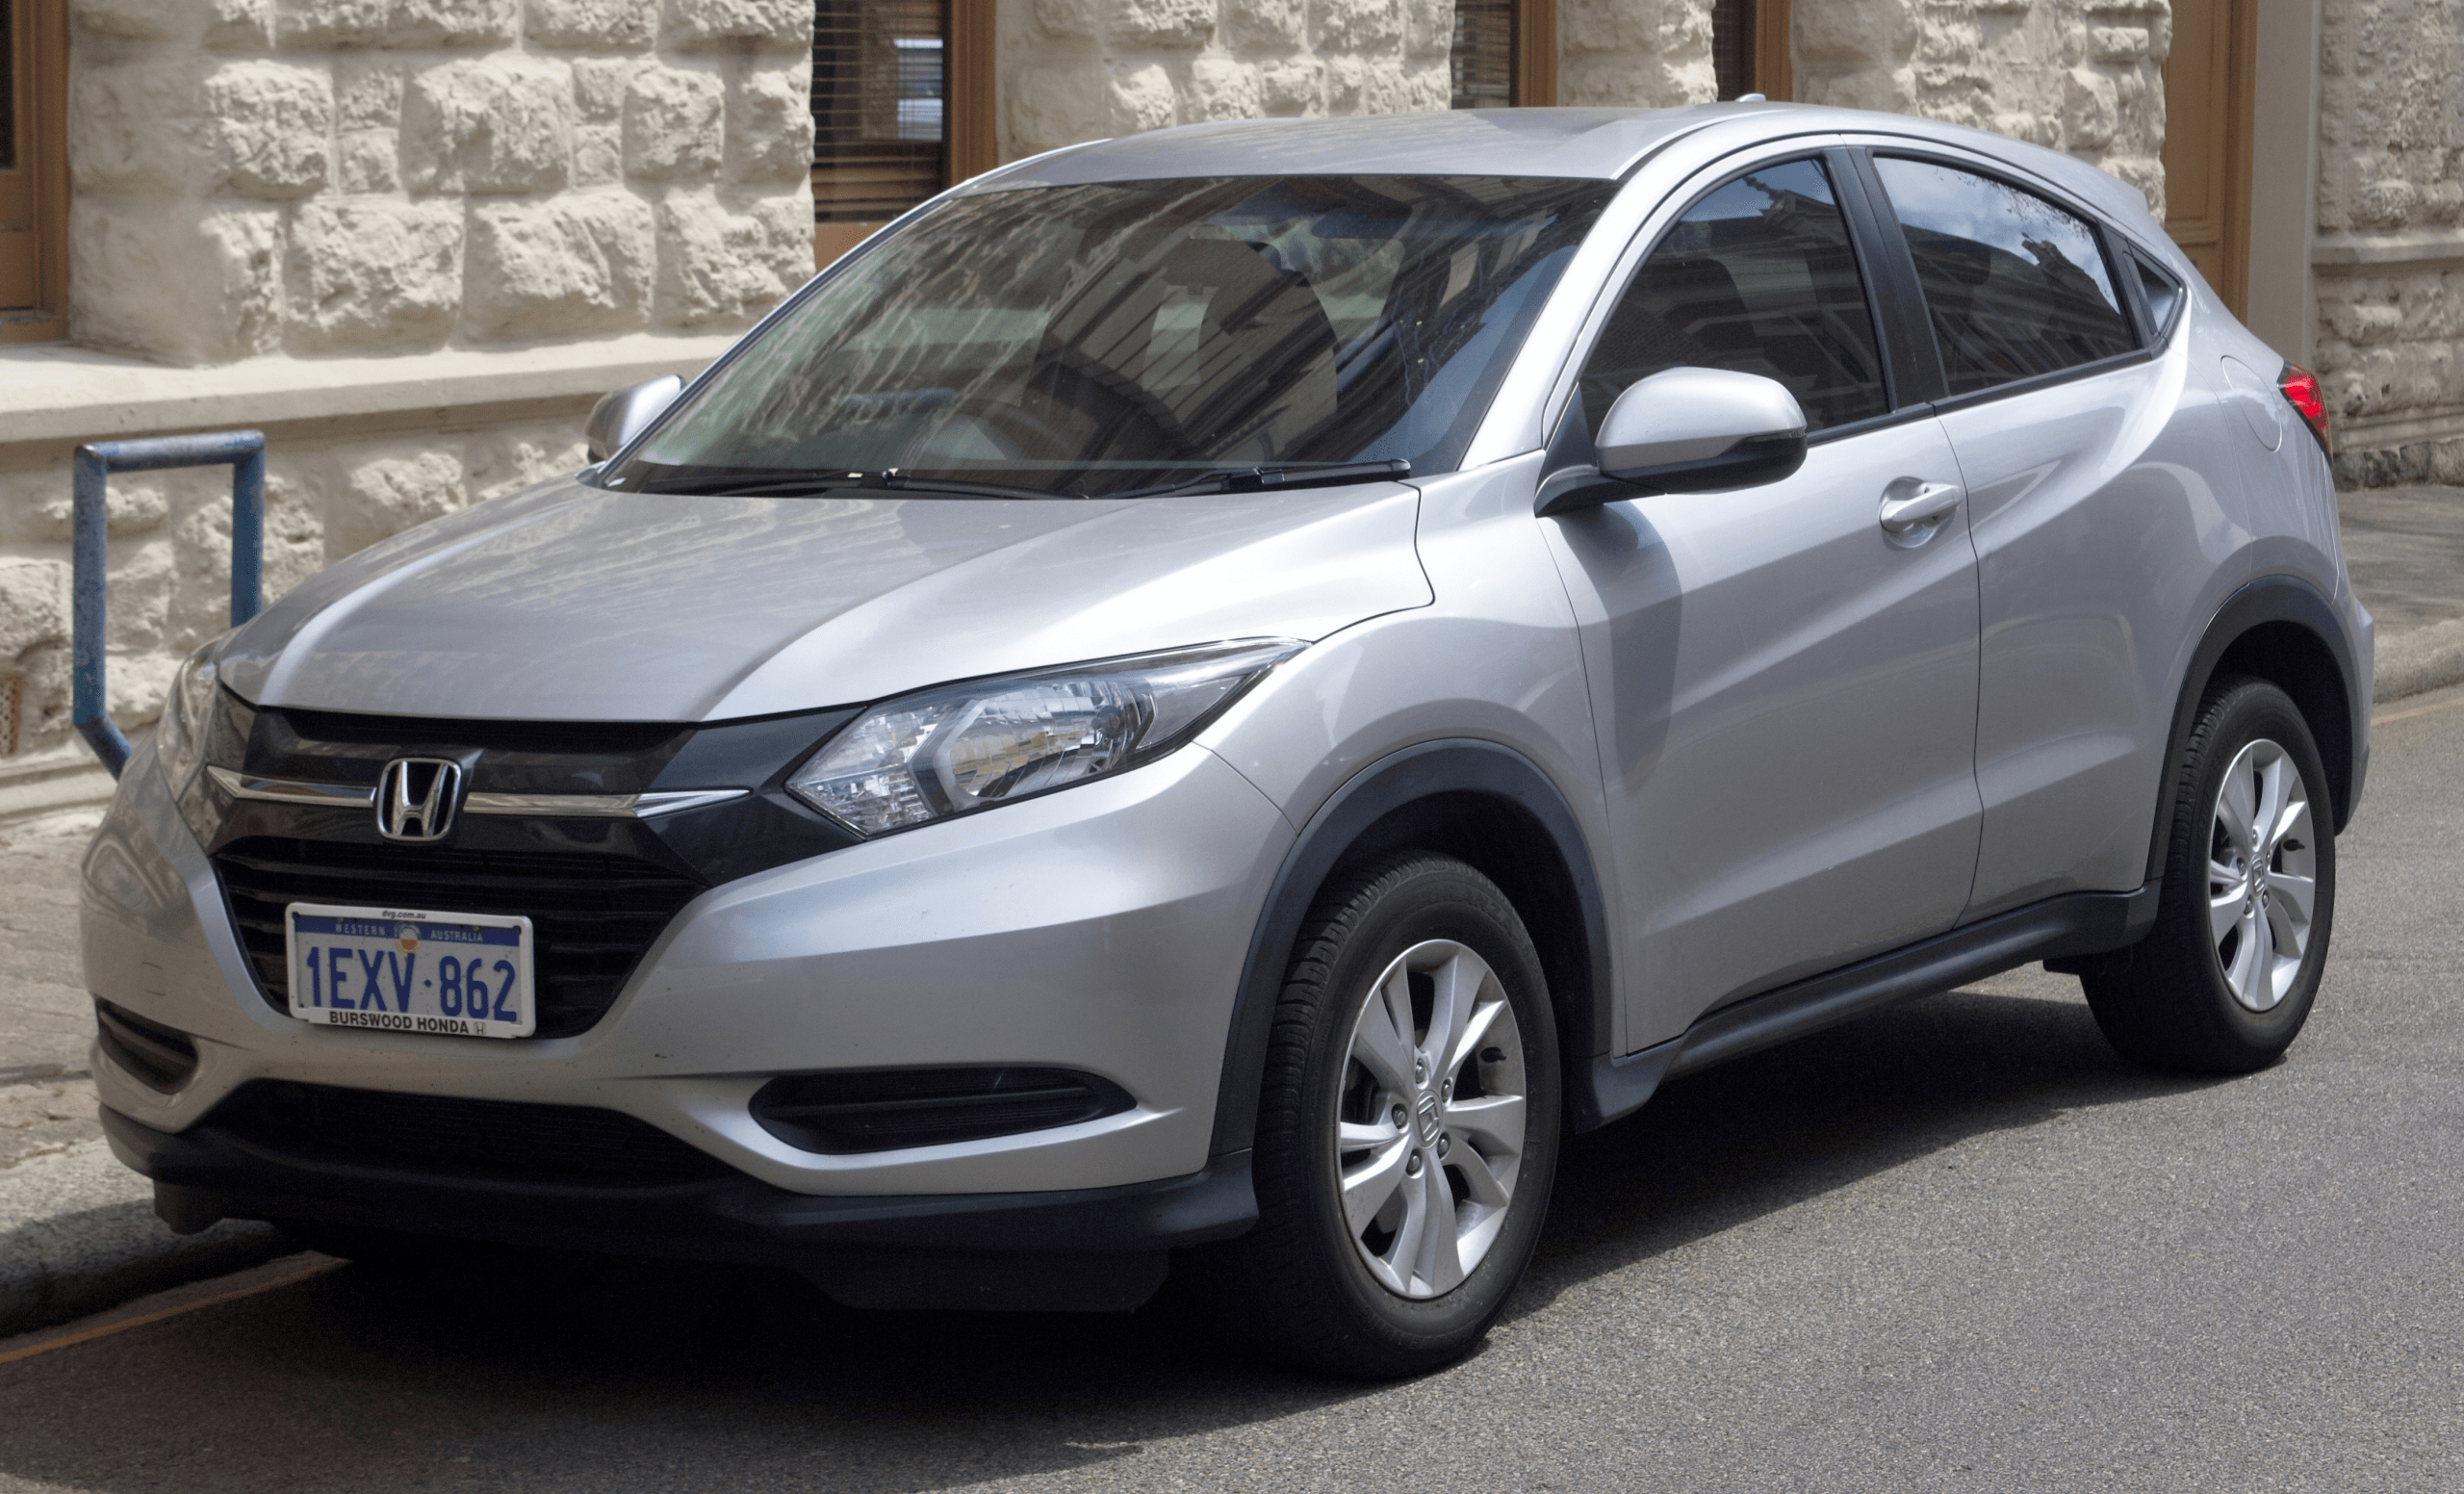 2021 Honda Crz Reviews In 2020 With Images Best Family Cars Honda Insight Honda Accord For Sale